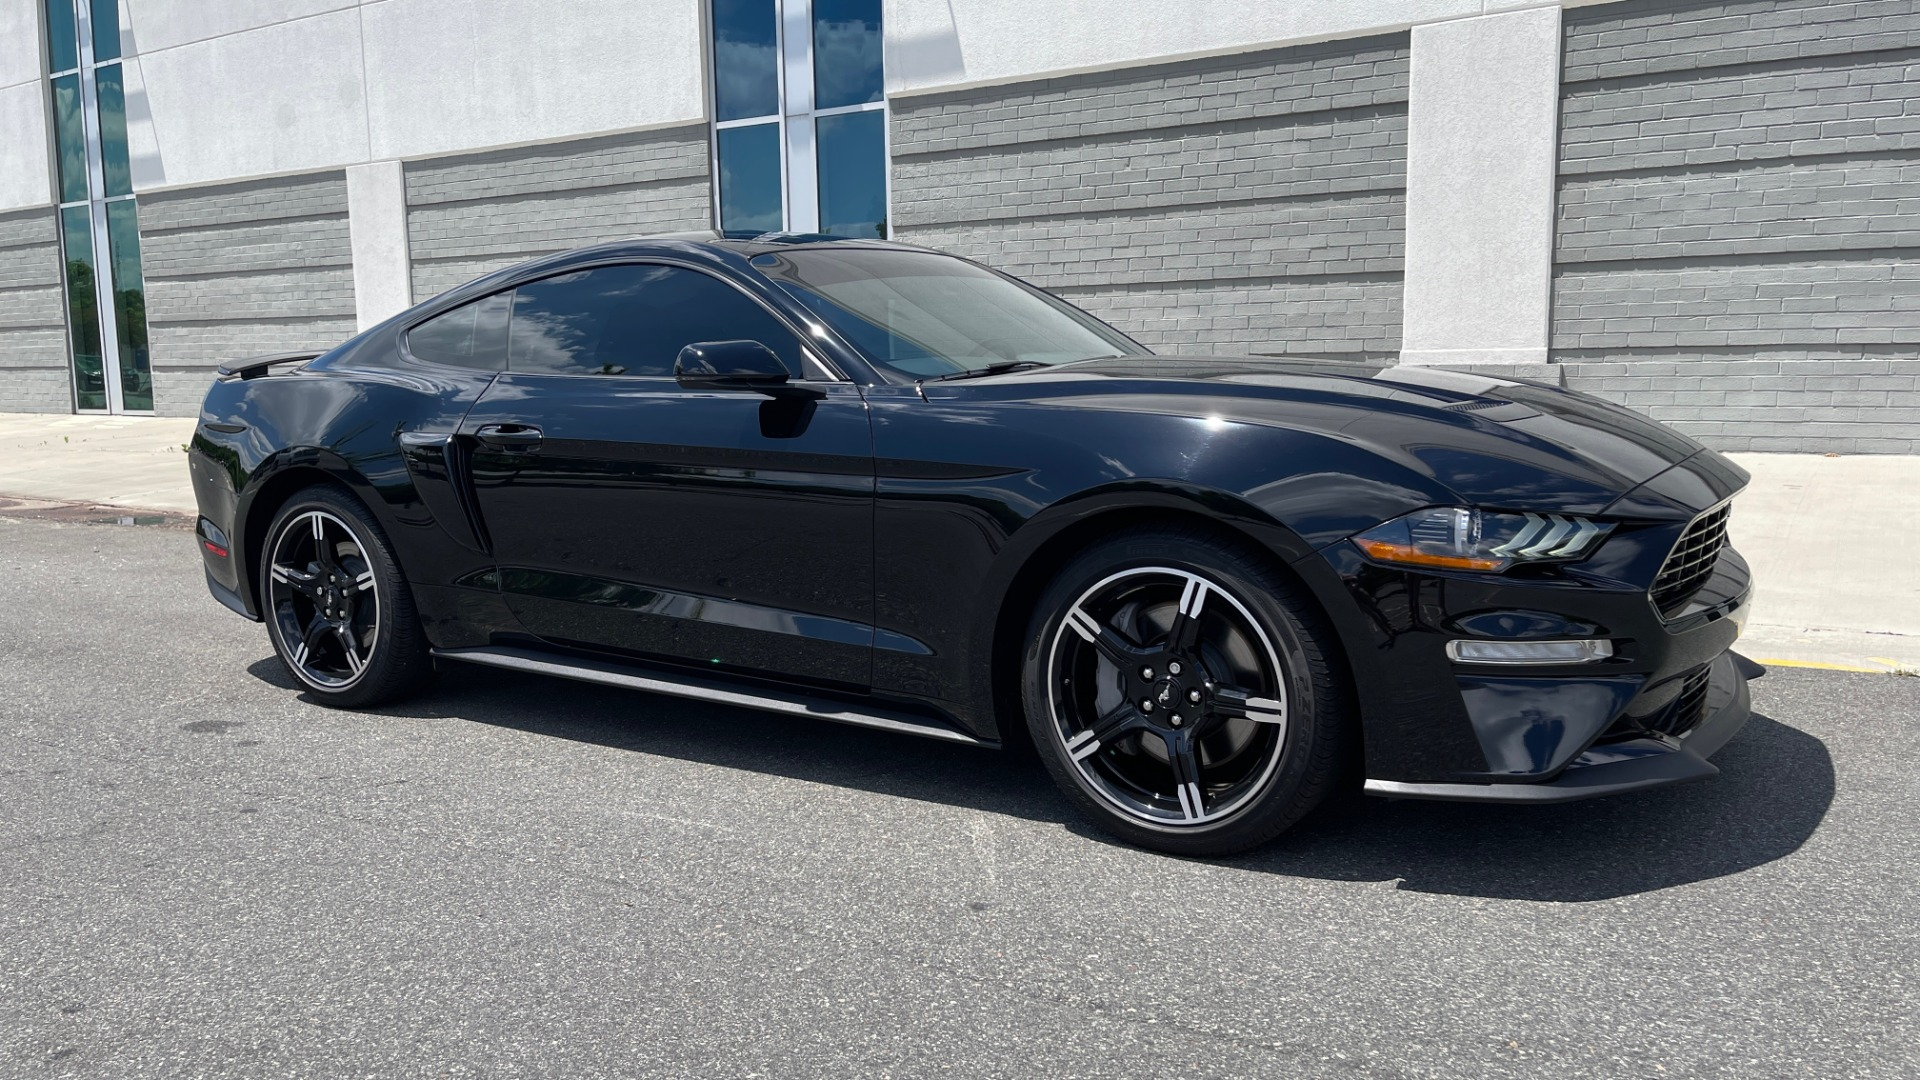 Used 2020 Ford MUSTANG GT PREMIUM / CALIFORNIA SPECIAL / 5.0L V8 / 6-SPD MAN for sale Sold at Formula Imports in Charlotte NC 28227 2